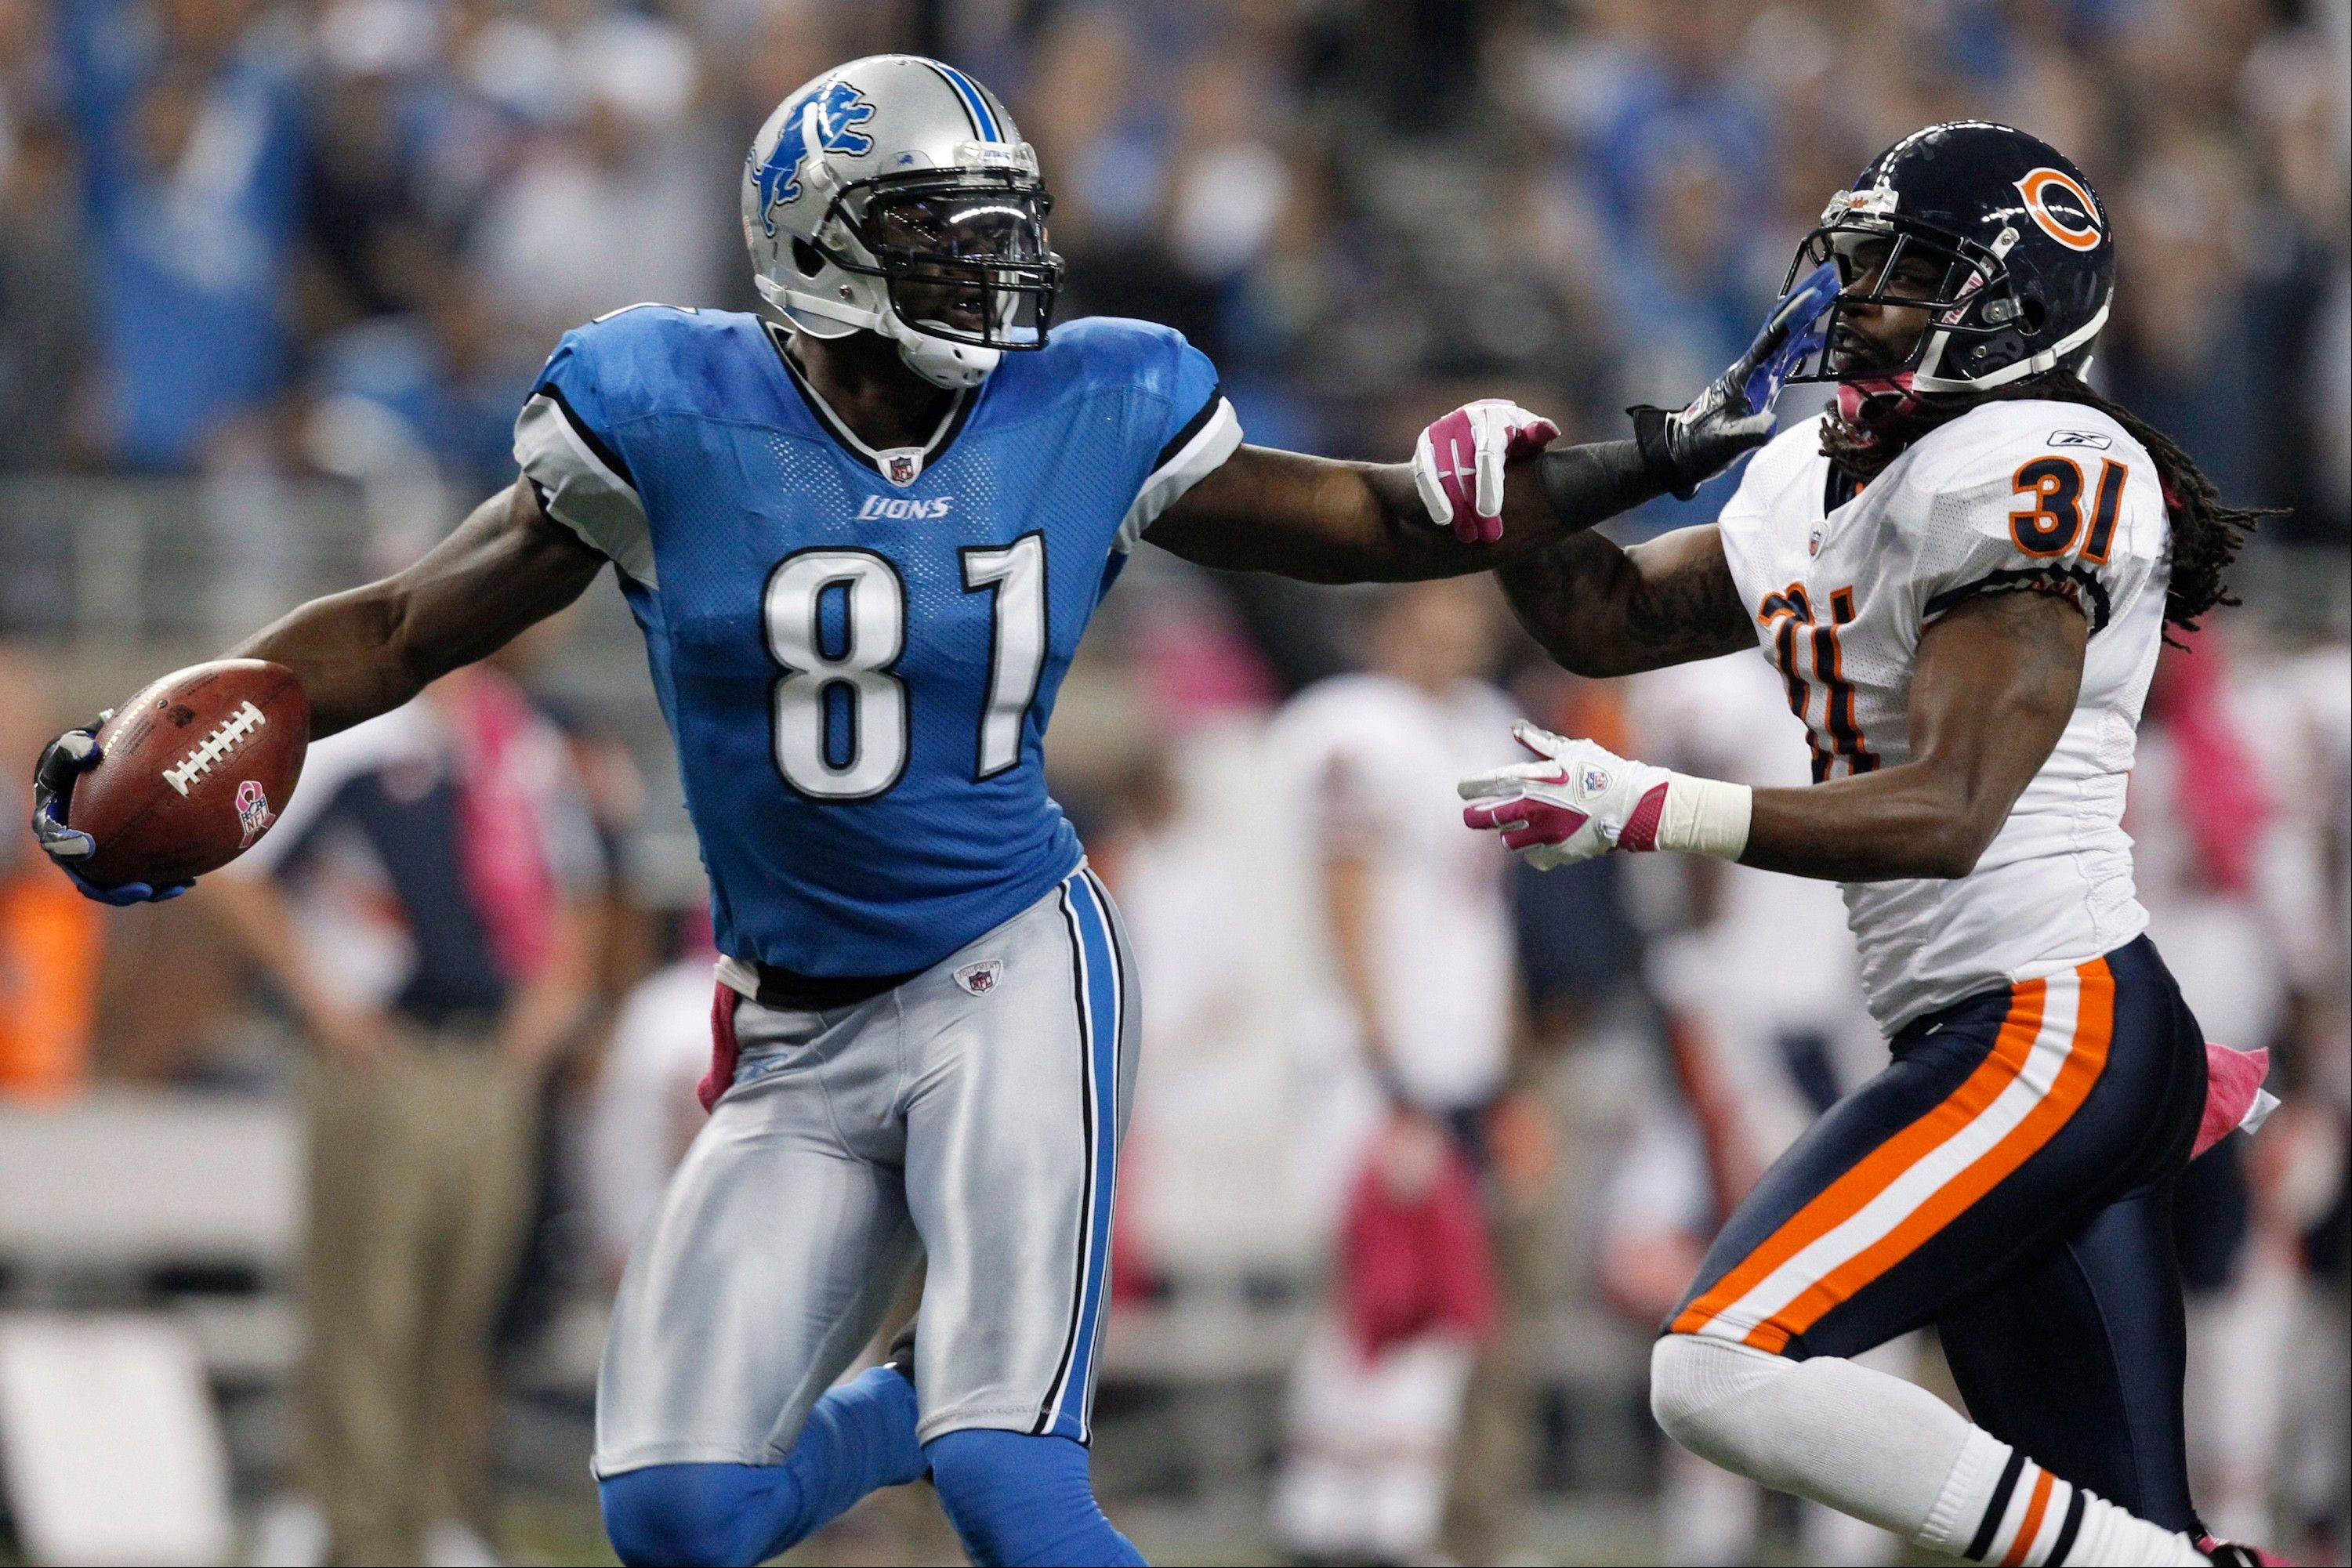 Images: Bears vs. Lions on Monday Night Football